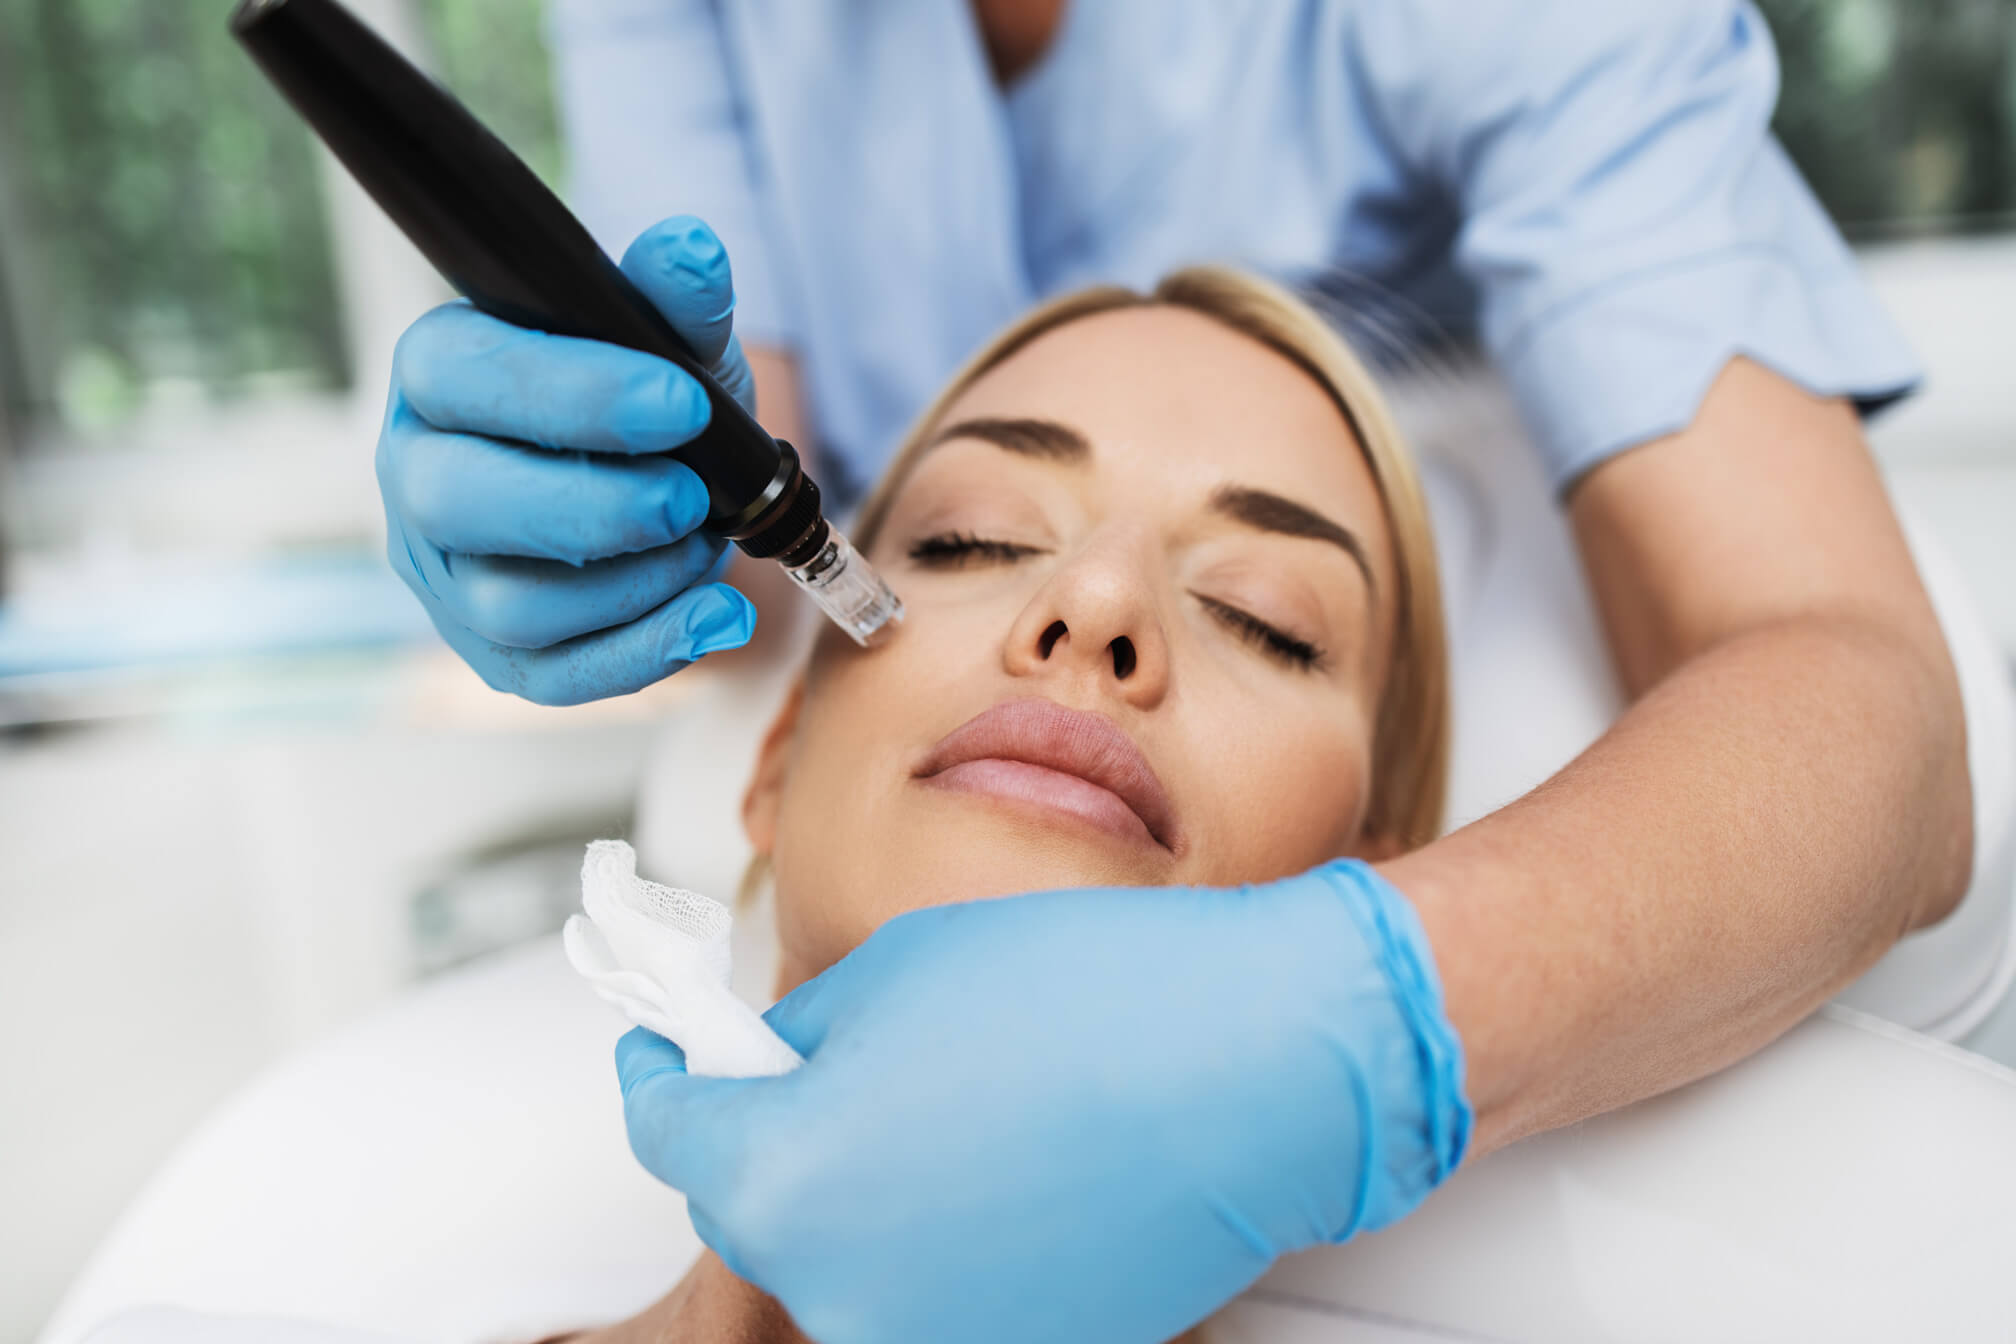 Platelet Rich Plasma (PRP) for Facial Rejuvenation & Face Lifting